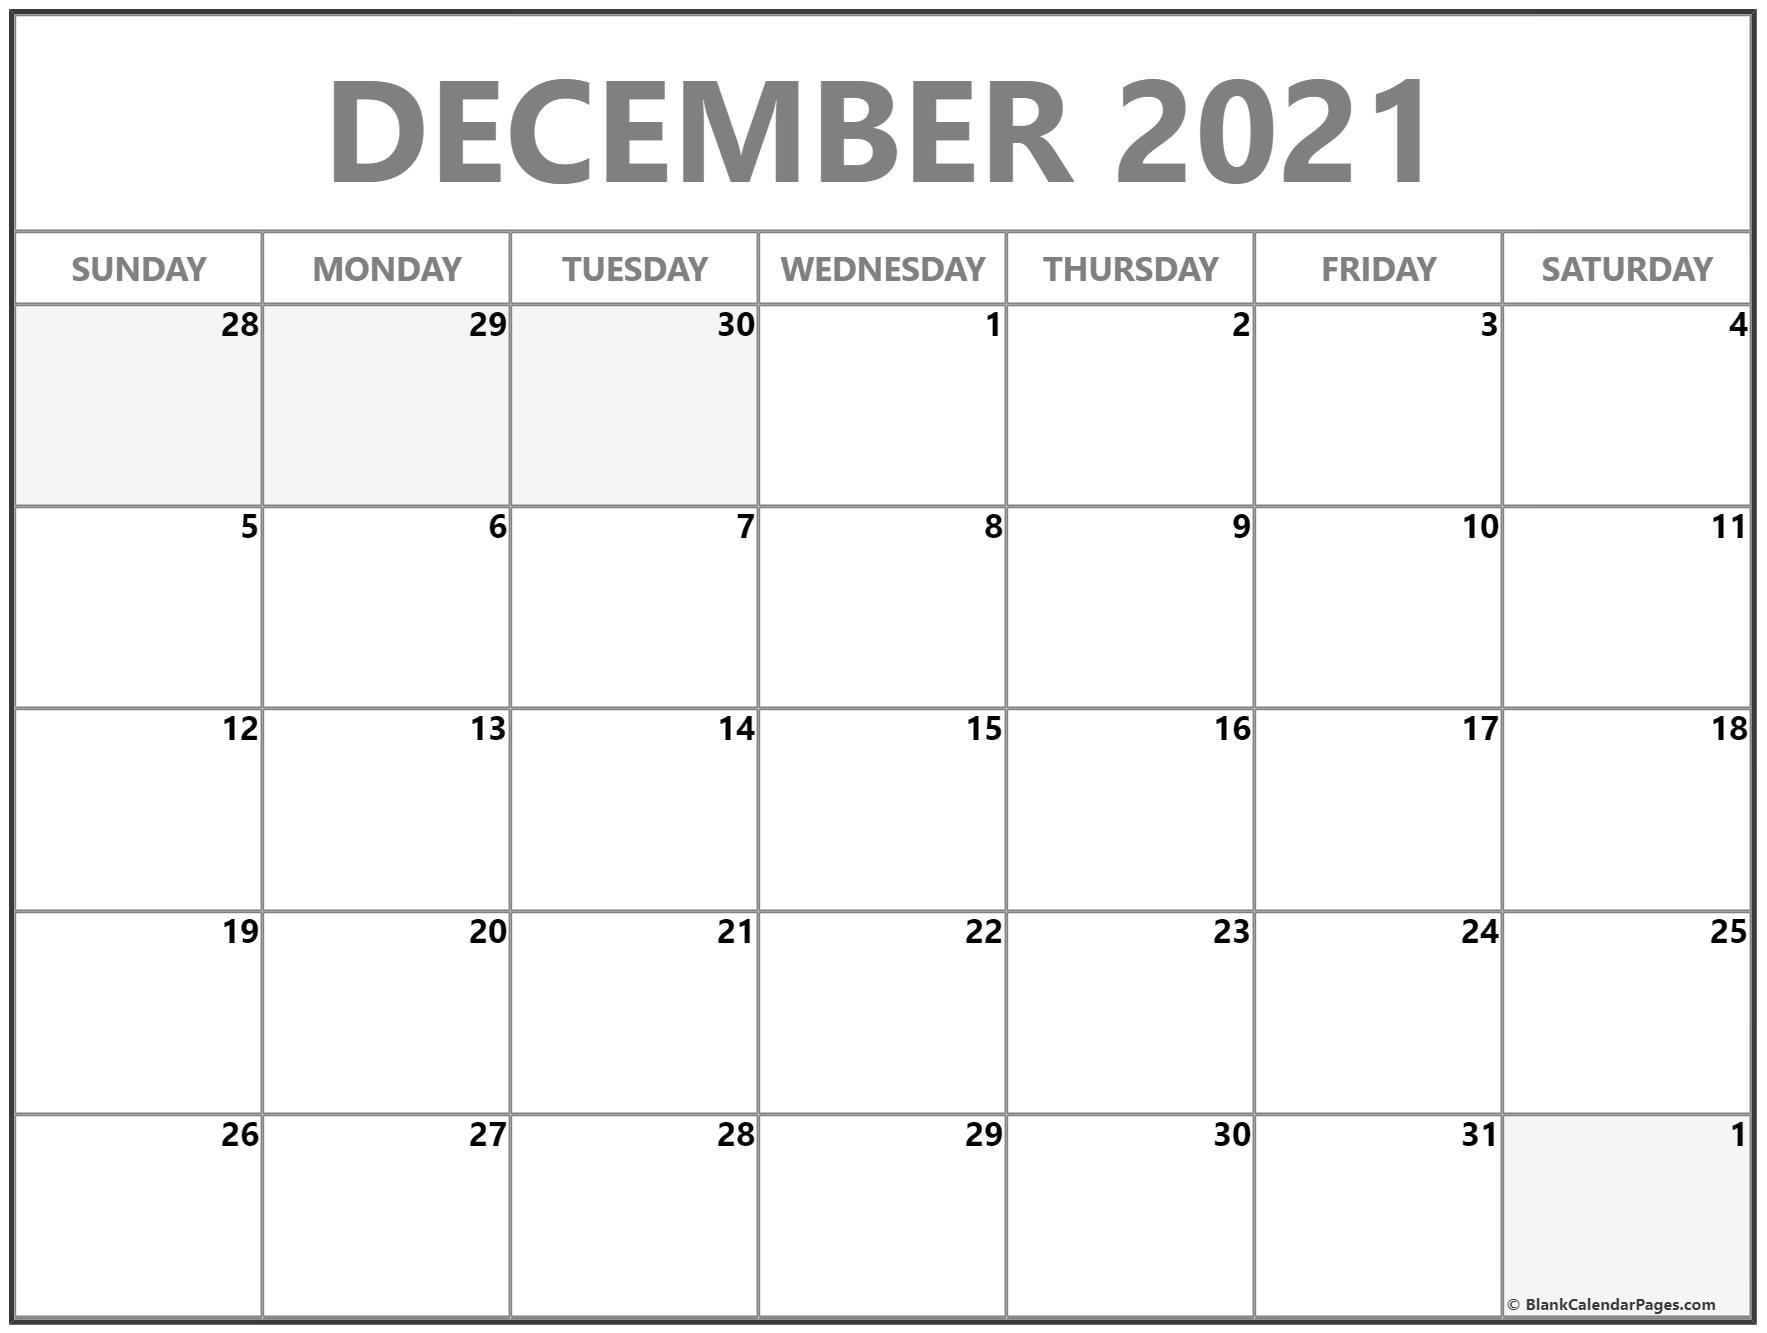 December 2021 blank monthly calendar template